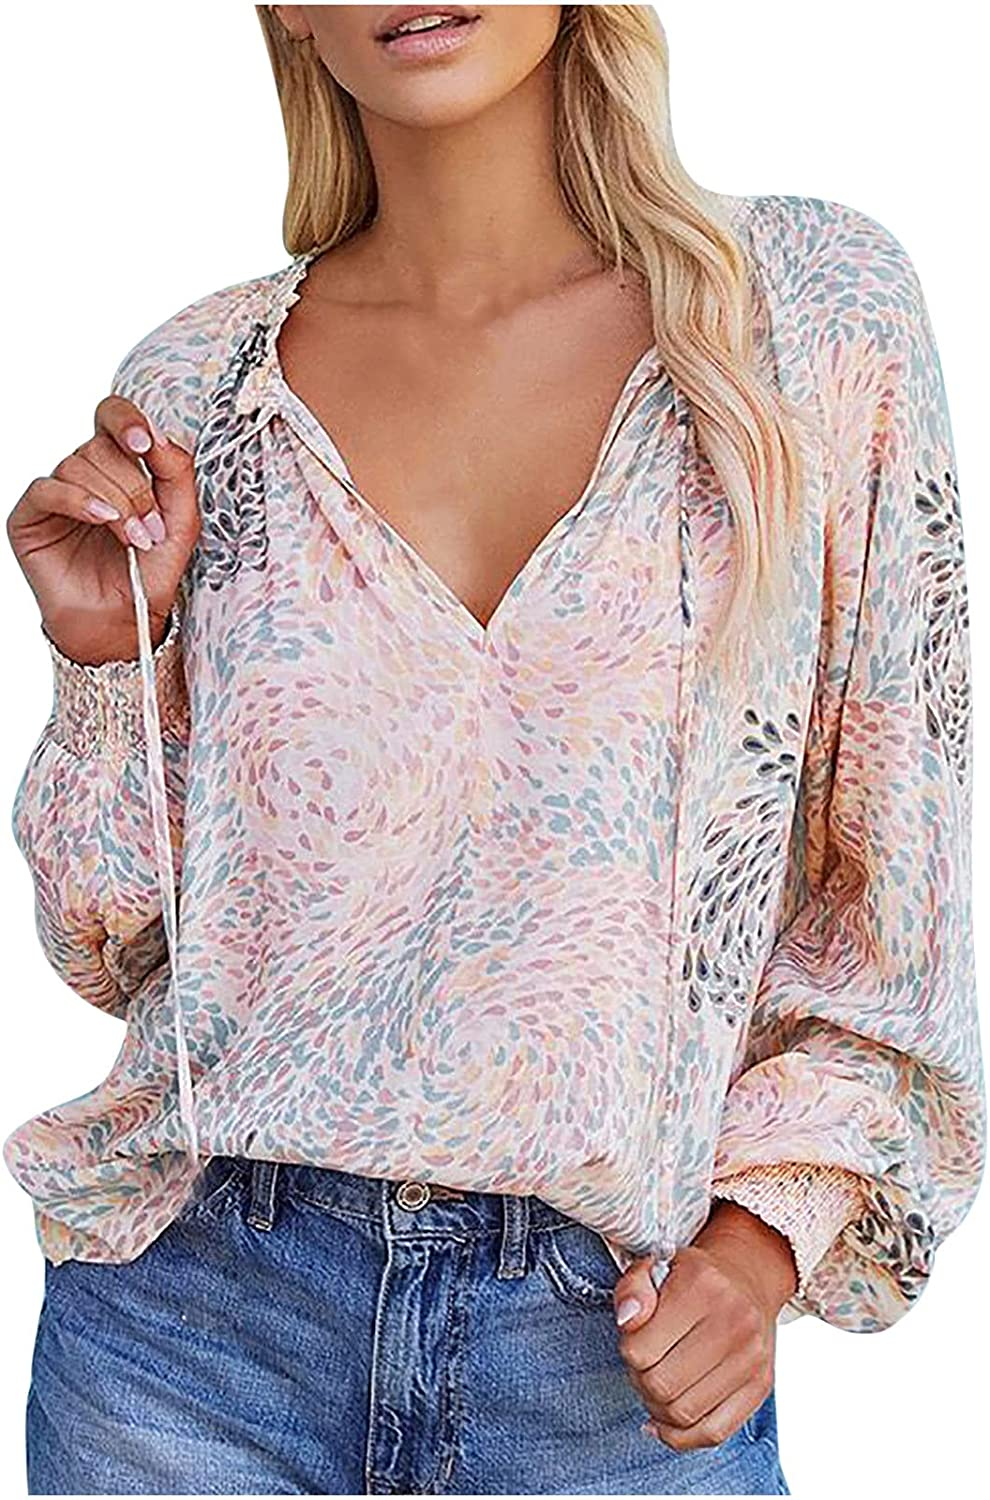 Sexy V Neck Tops for Women Long Sleeve Tunic Tops Vintage Fall Shirts Fashion Print Pullover Blouse Loose Fit